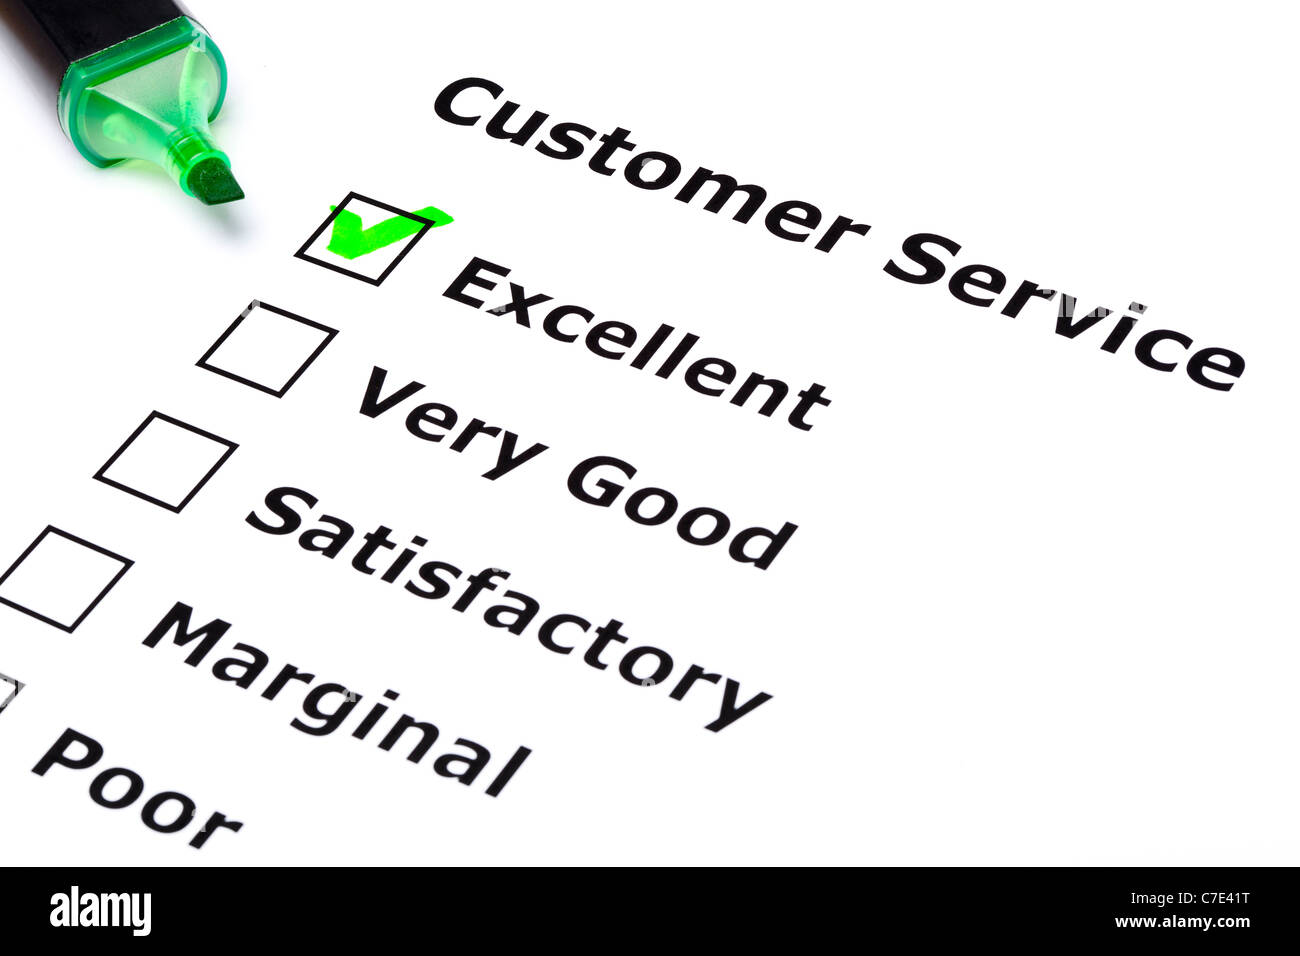 Customer service survey with green tick on Excellent with felt tip pen. - Stock Image